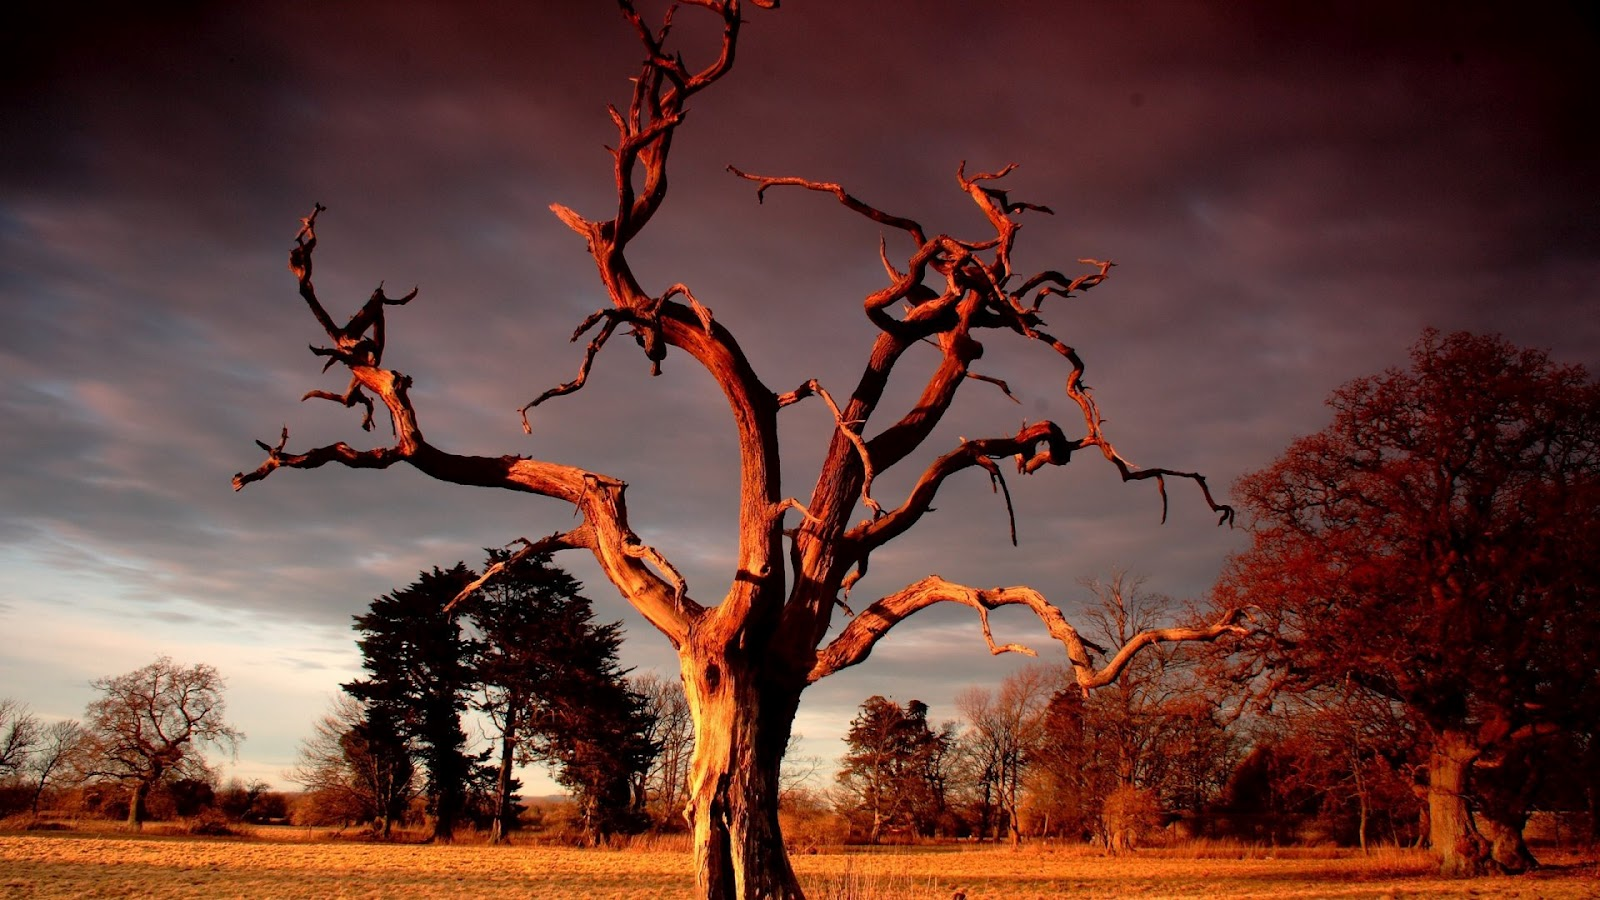 http://2.bp.blogspot.com/-02cOeLSZoEQ/UGLRYOpUFqI/AAAAAAAABjA/i-nAb75CEFk/s1600/red-sunset-over-dry-tree.jpg